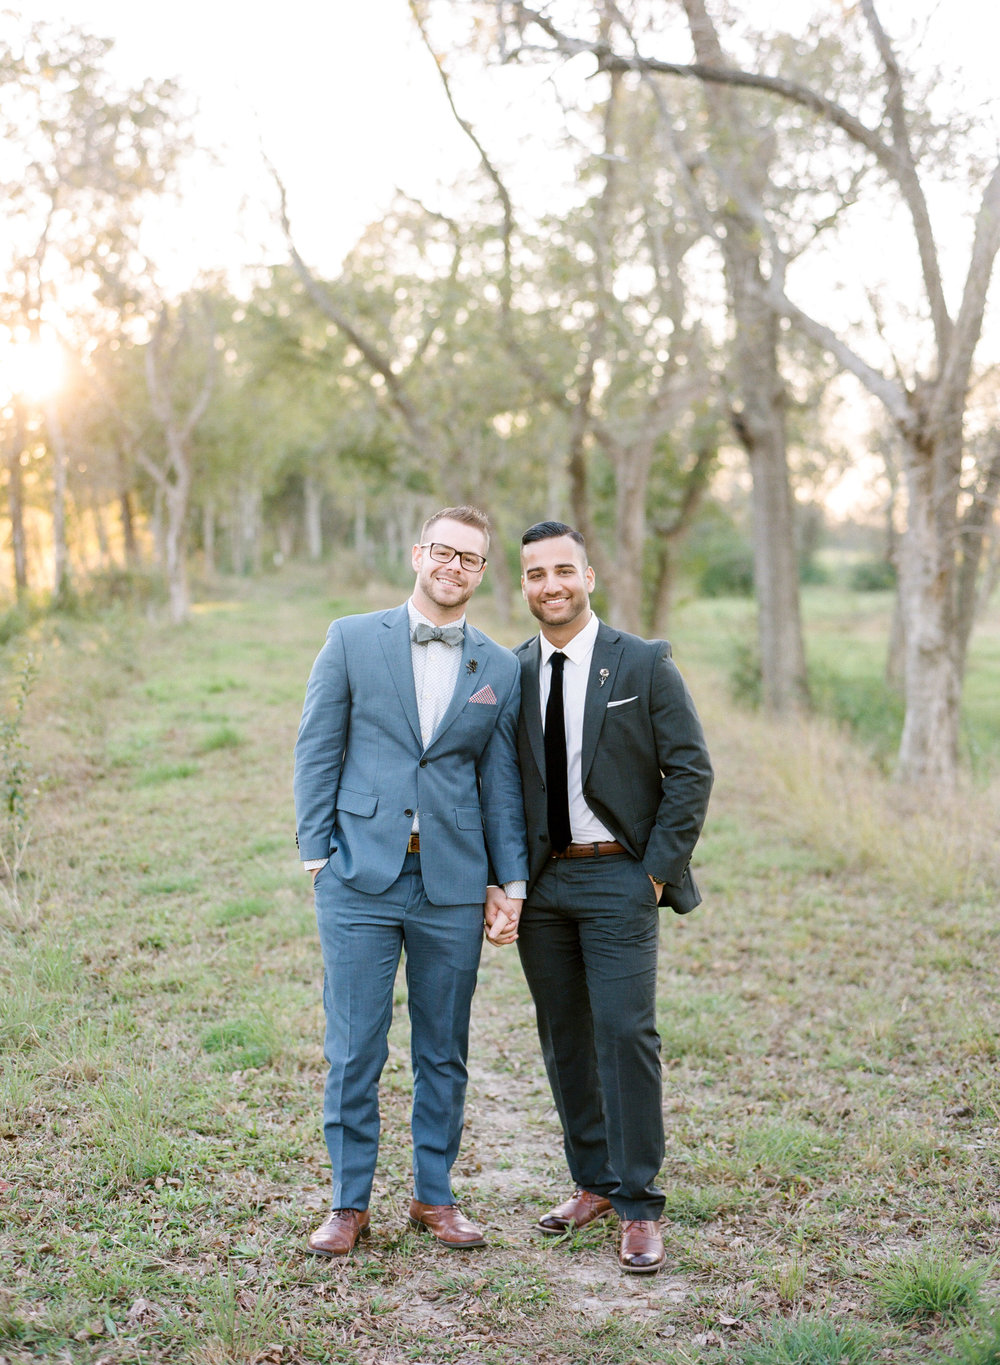 Houston-Texas-Same-Sex-LGBT-Wedding-Photographer-Burnett's-Board-Feature-Dana-Fernandez-Photography-Love-Wins-Film-16.jpg